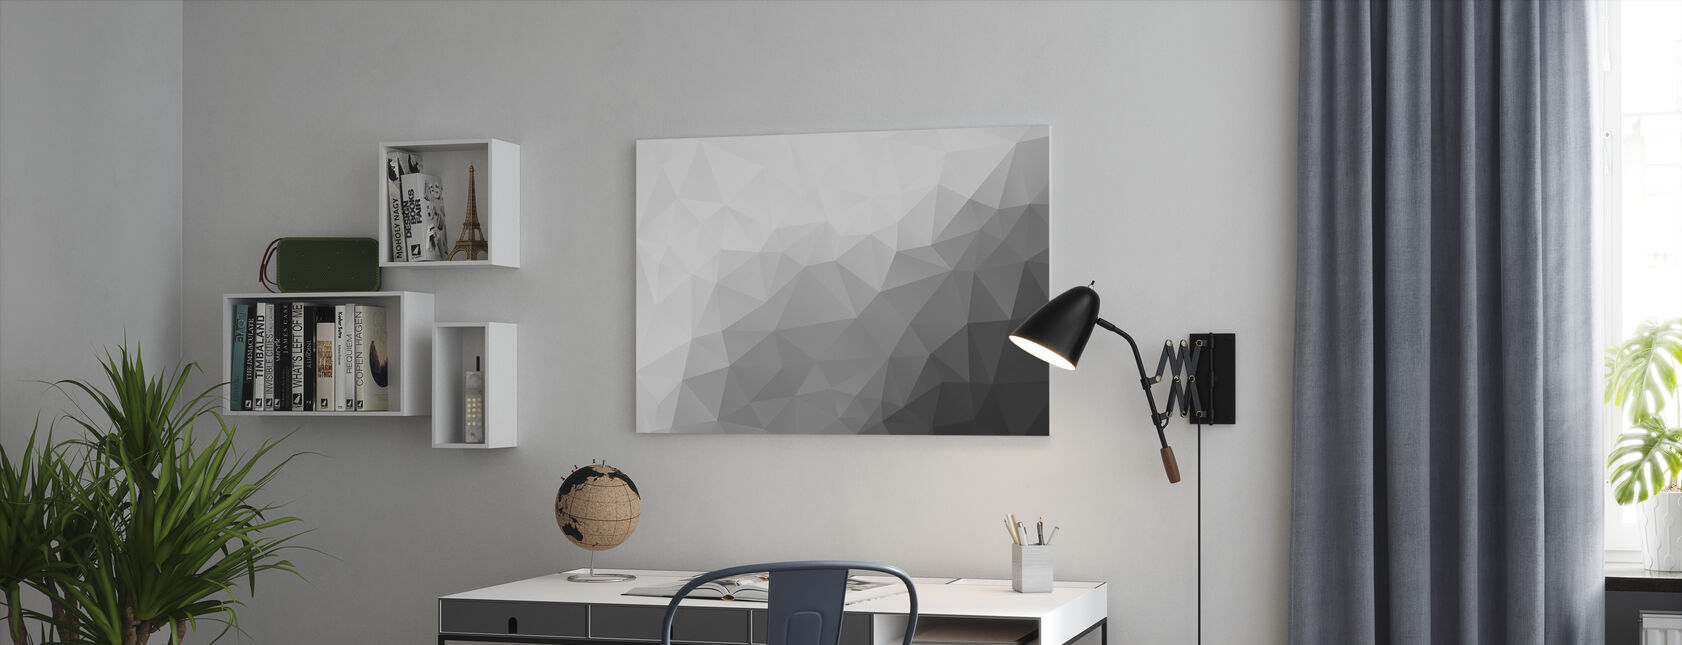 Polygonal Grey Shades 2 - Canvas print - Office